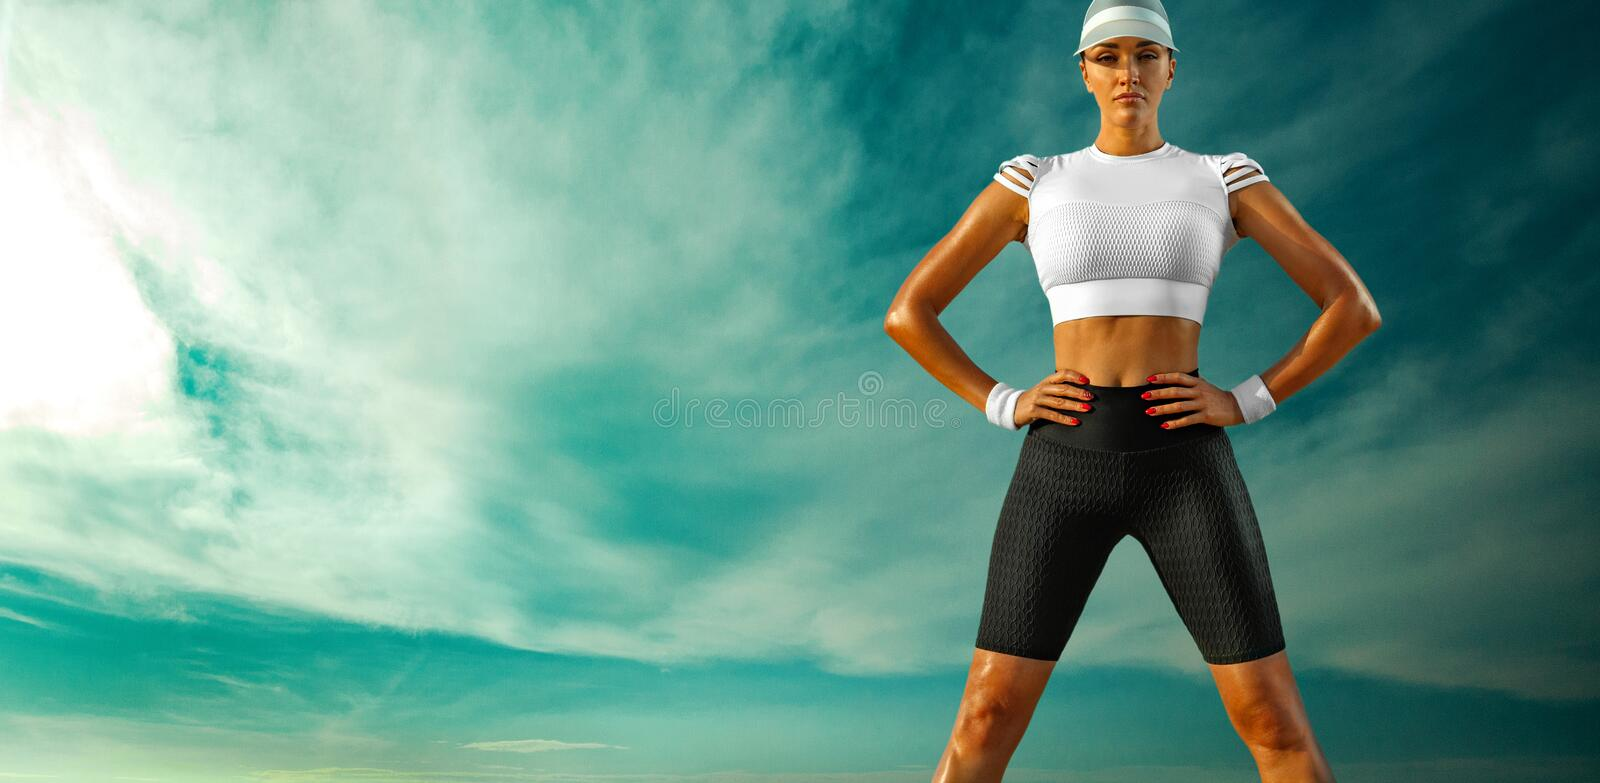 Sporty and fit young woman athlete relaxed after yoga training on the sky background. The concept of a healthy lifestyle royalty free stock images